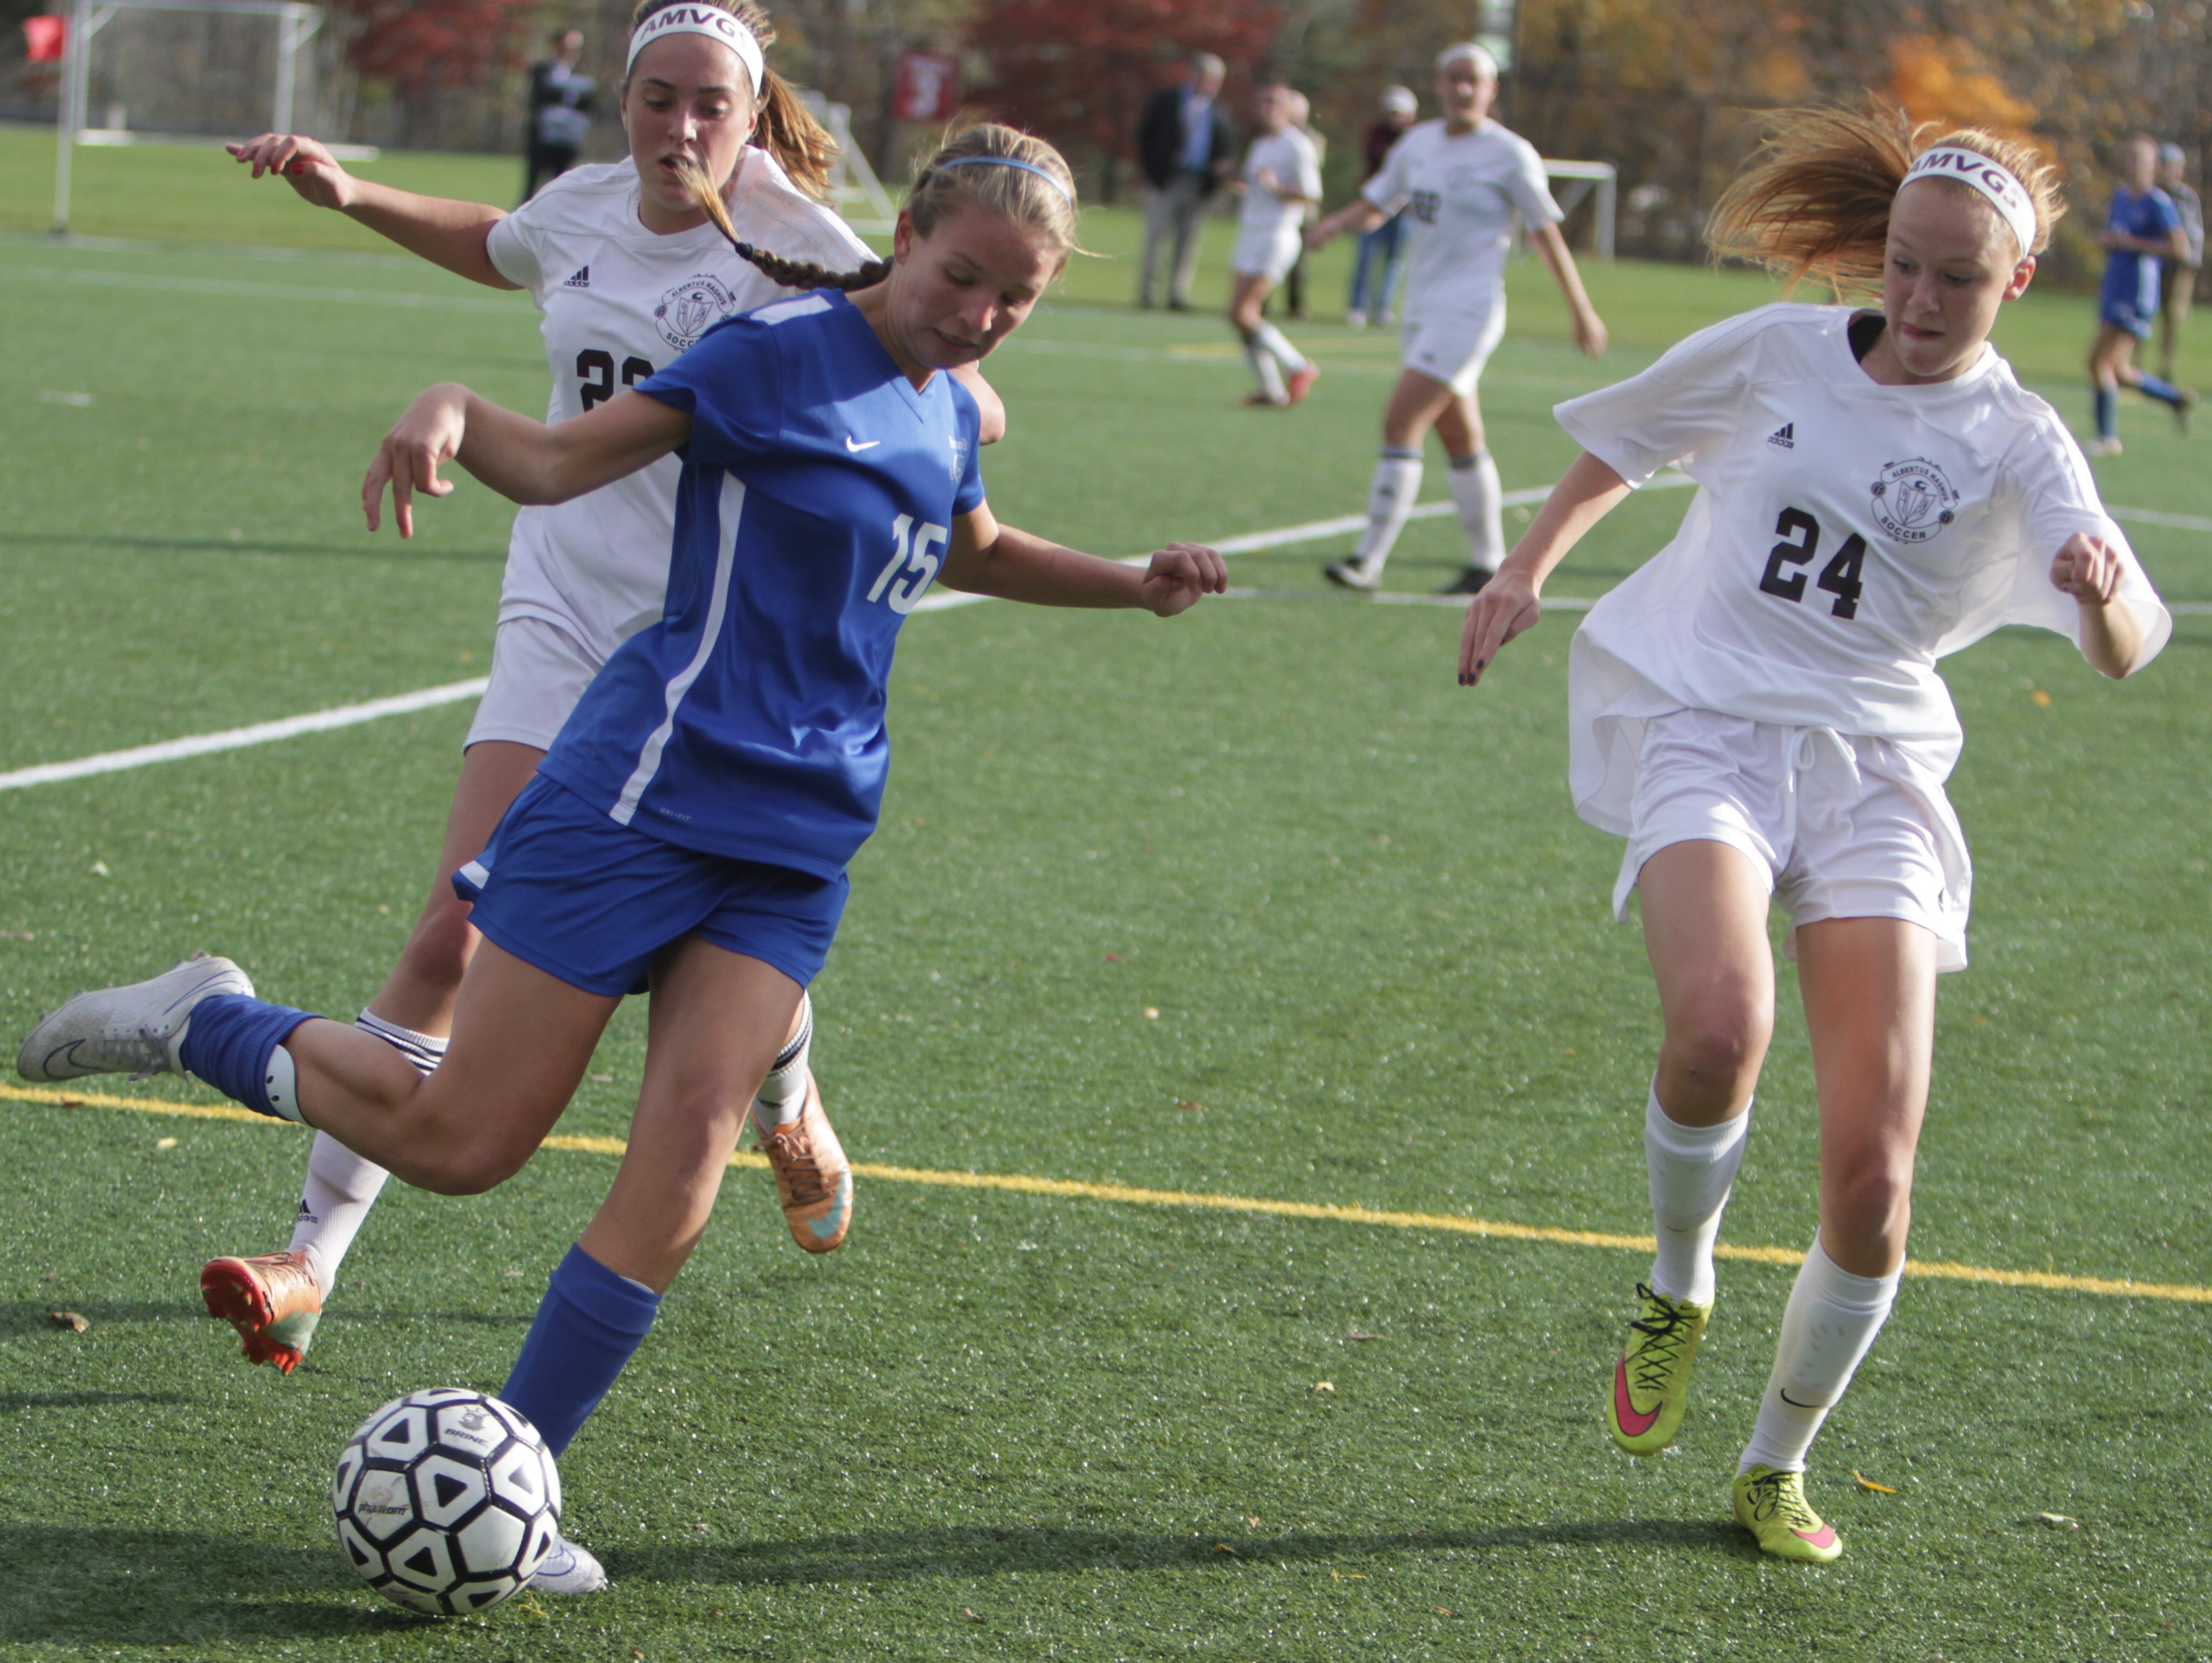 Albertus Magnus defeated Bronxville 1-0 in a Section 1, Class B semifinal game at the Orangetown Soccer Field Complex on Thursday, October 29th, 2015.